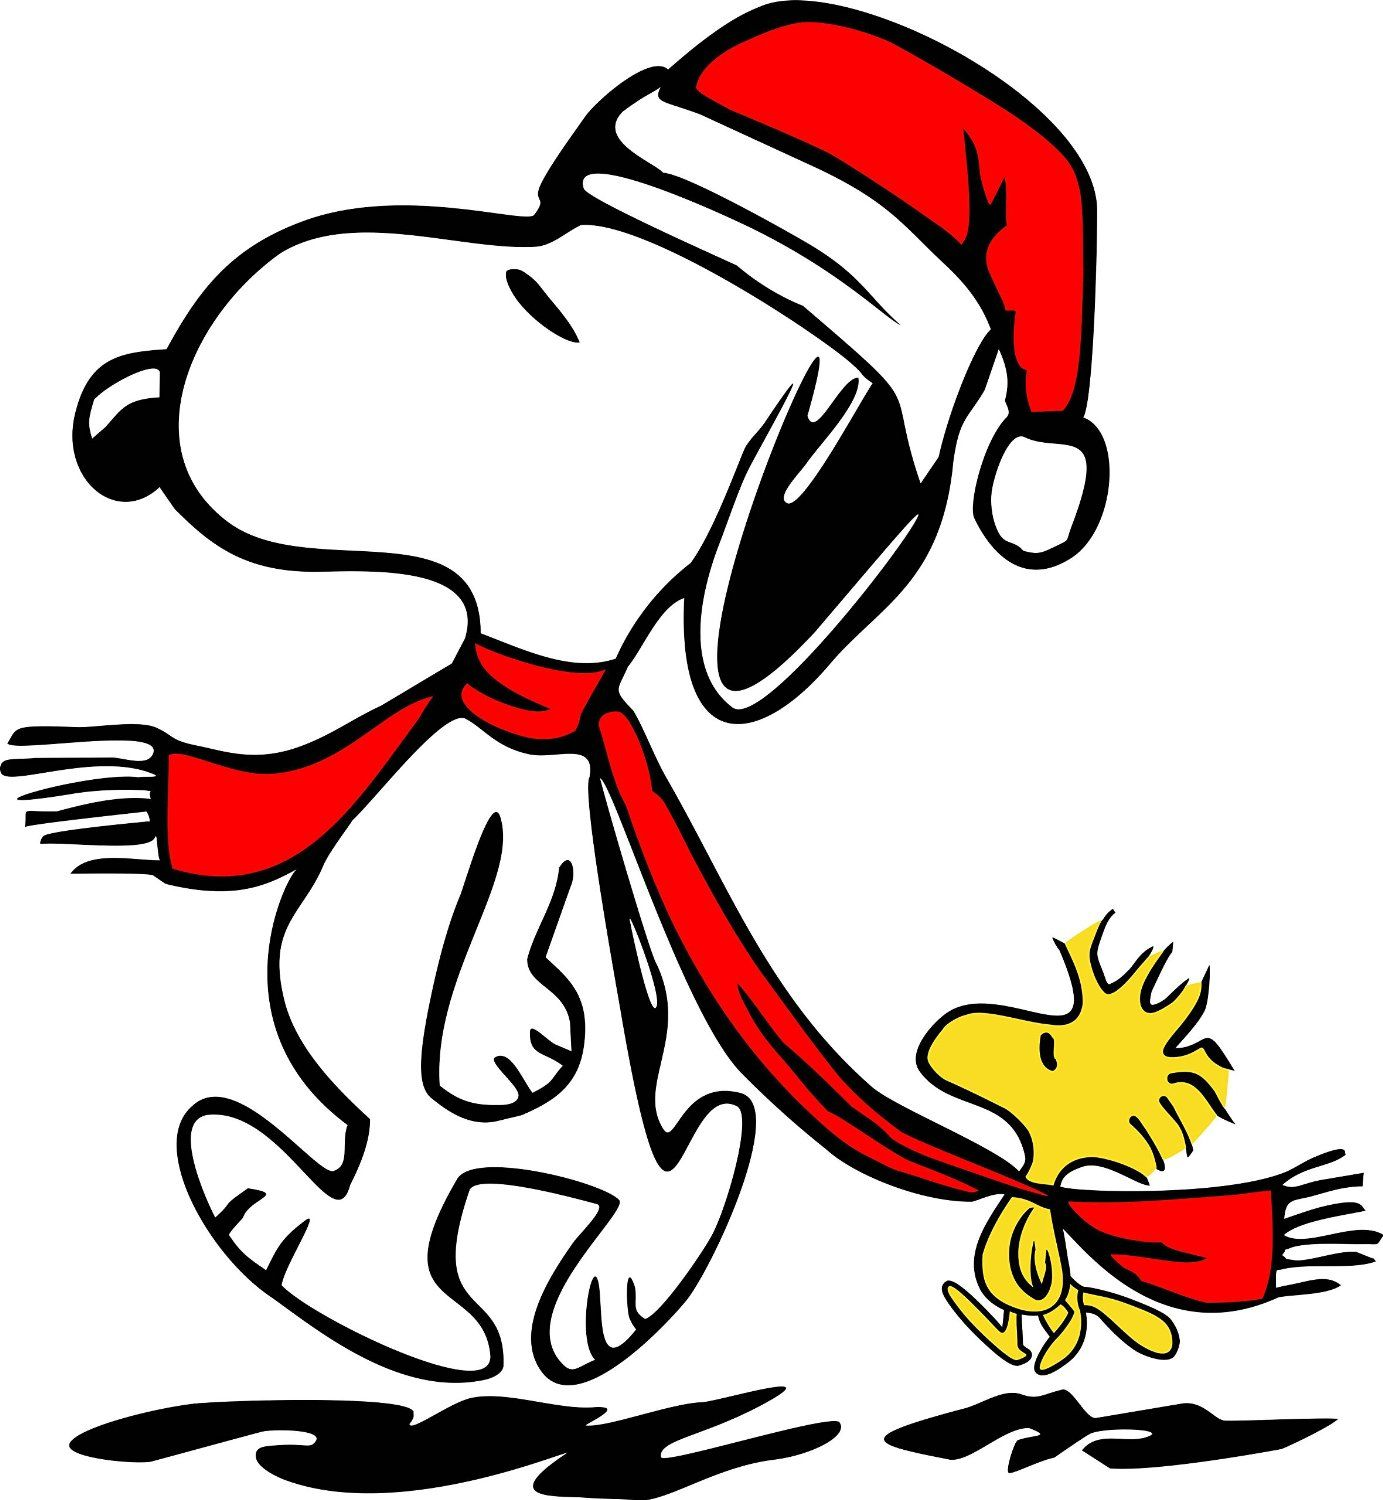 amazon com snoopy winter holiday christmas with woodstock in stocking cap and red scarf 14 x 16 inches new item  [ 1383 x 1500 Pixel ]